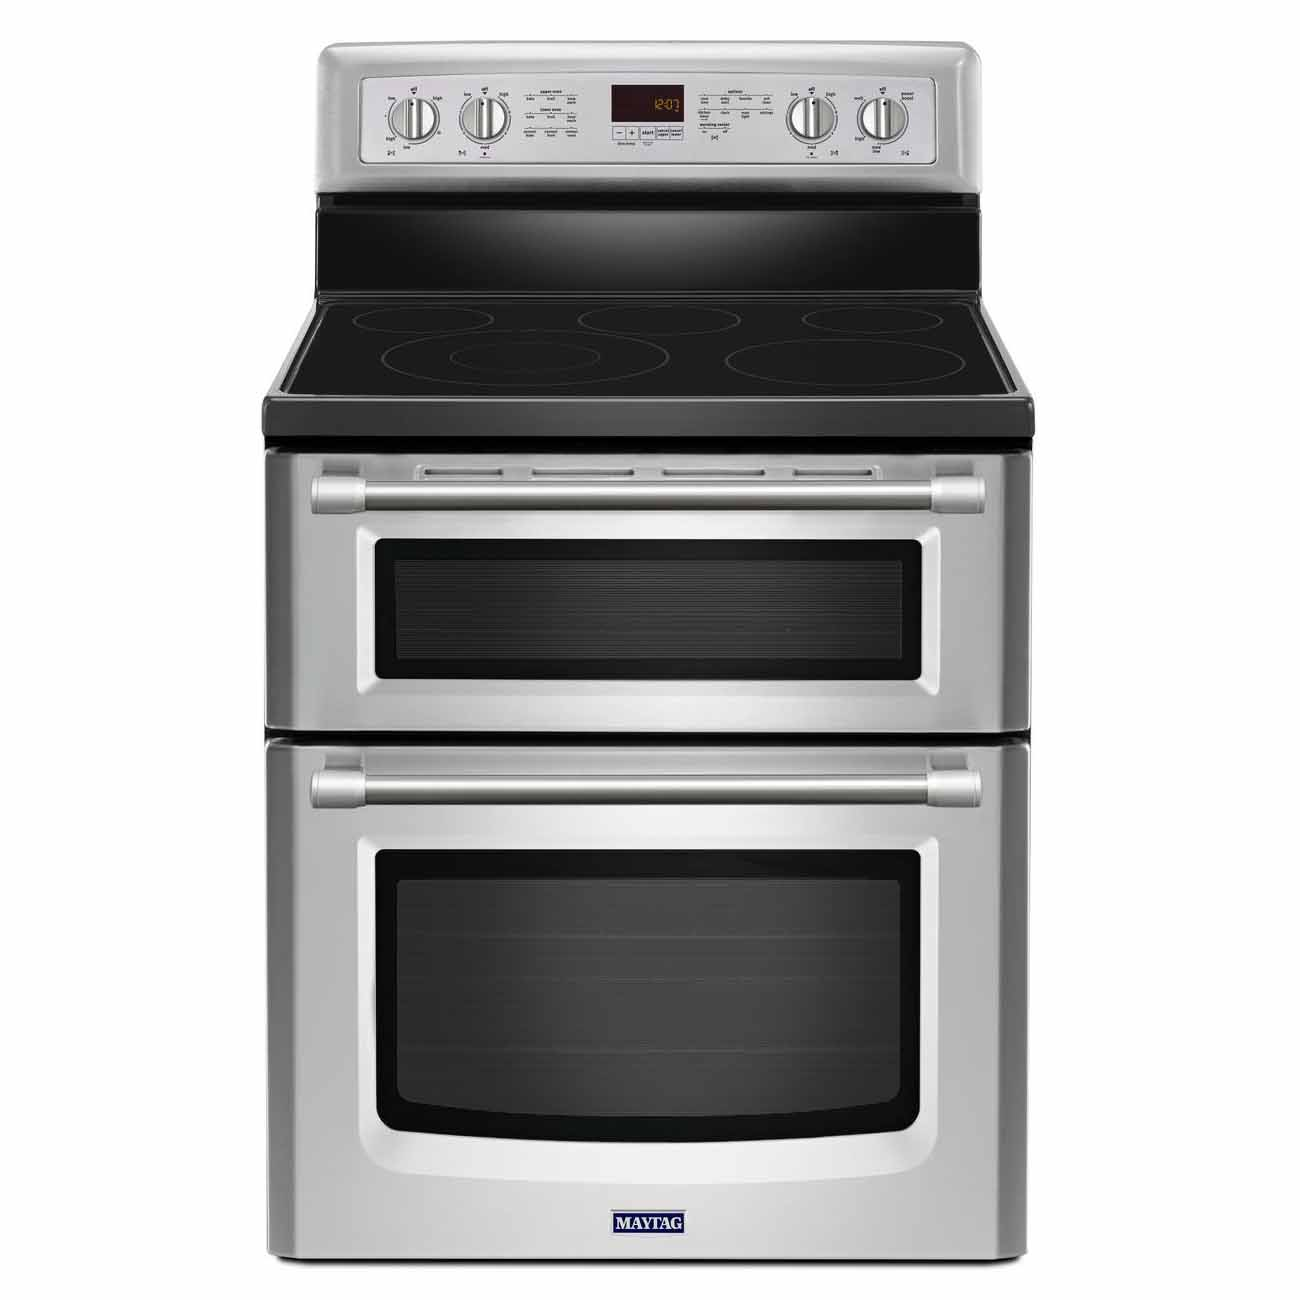 Maytag 30 inch wide double oven electric range with power element met8720ds review - Gas stove double oven reviews ...